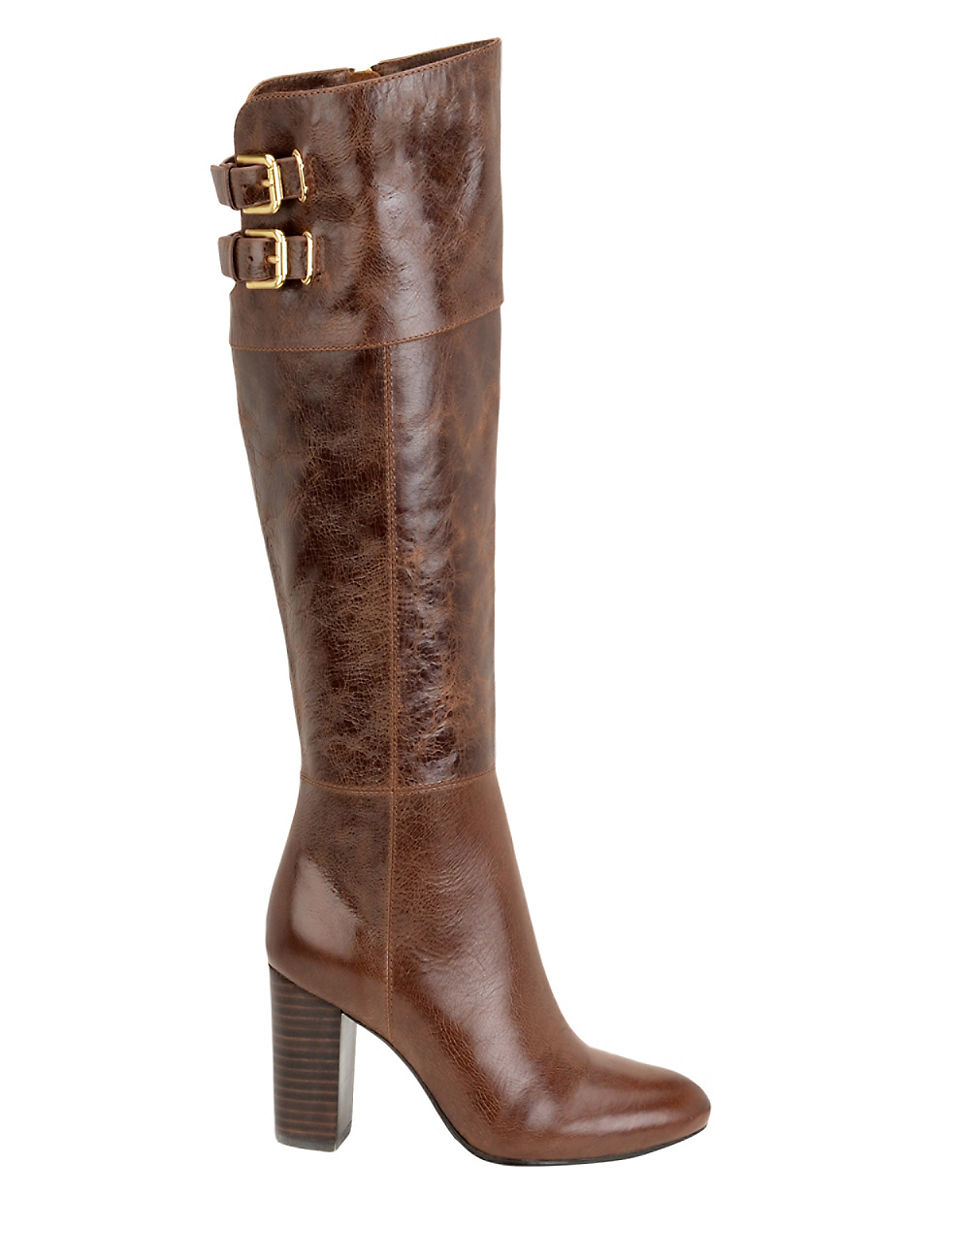 Shop knee high leather boot at Neiman Marcus, where you will find free shipping on the latest in fashion from top designers. Available in Black, Brown, Gray. Valentino Garavani Pansy Bloom Leather Knee Boots Details Valentino Garavani smooth calf leather knee-high boots with printed pansy flower.